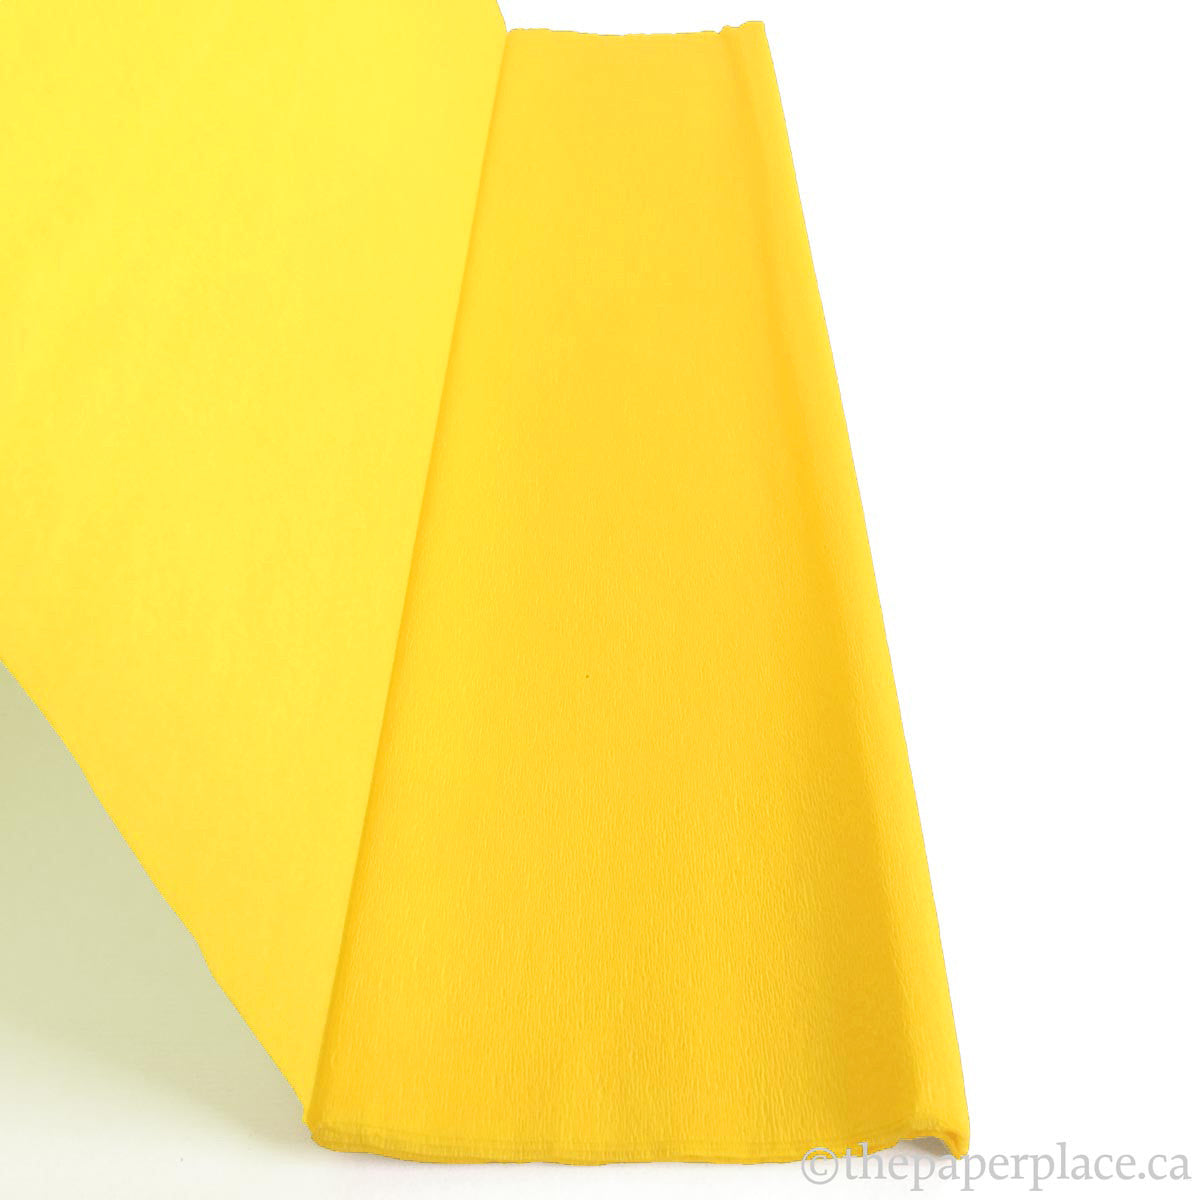 Single-Sided Crepe - Hot Yellow